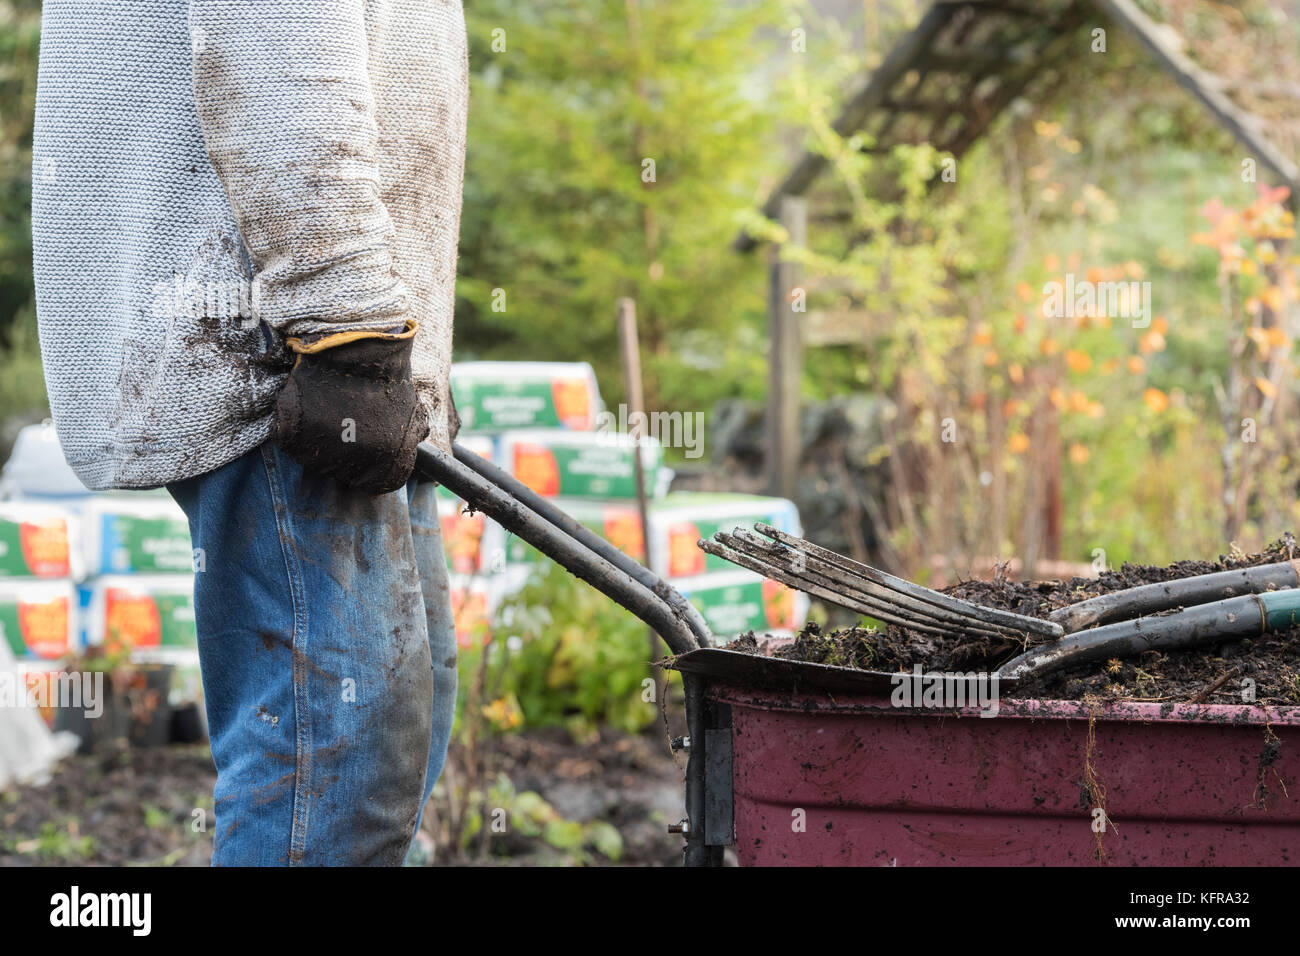 Dirty jobs stock photos images alamy